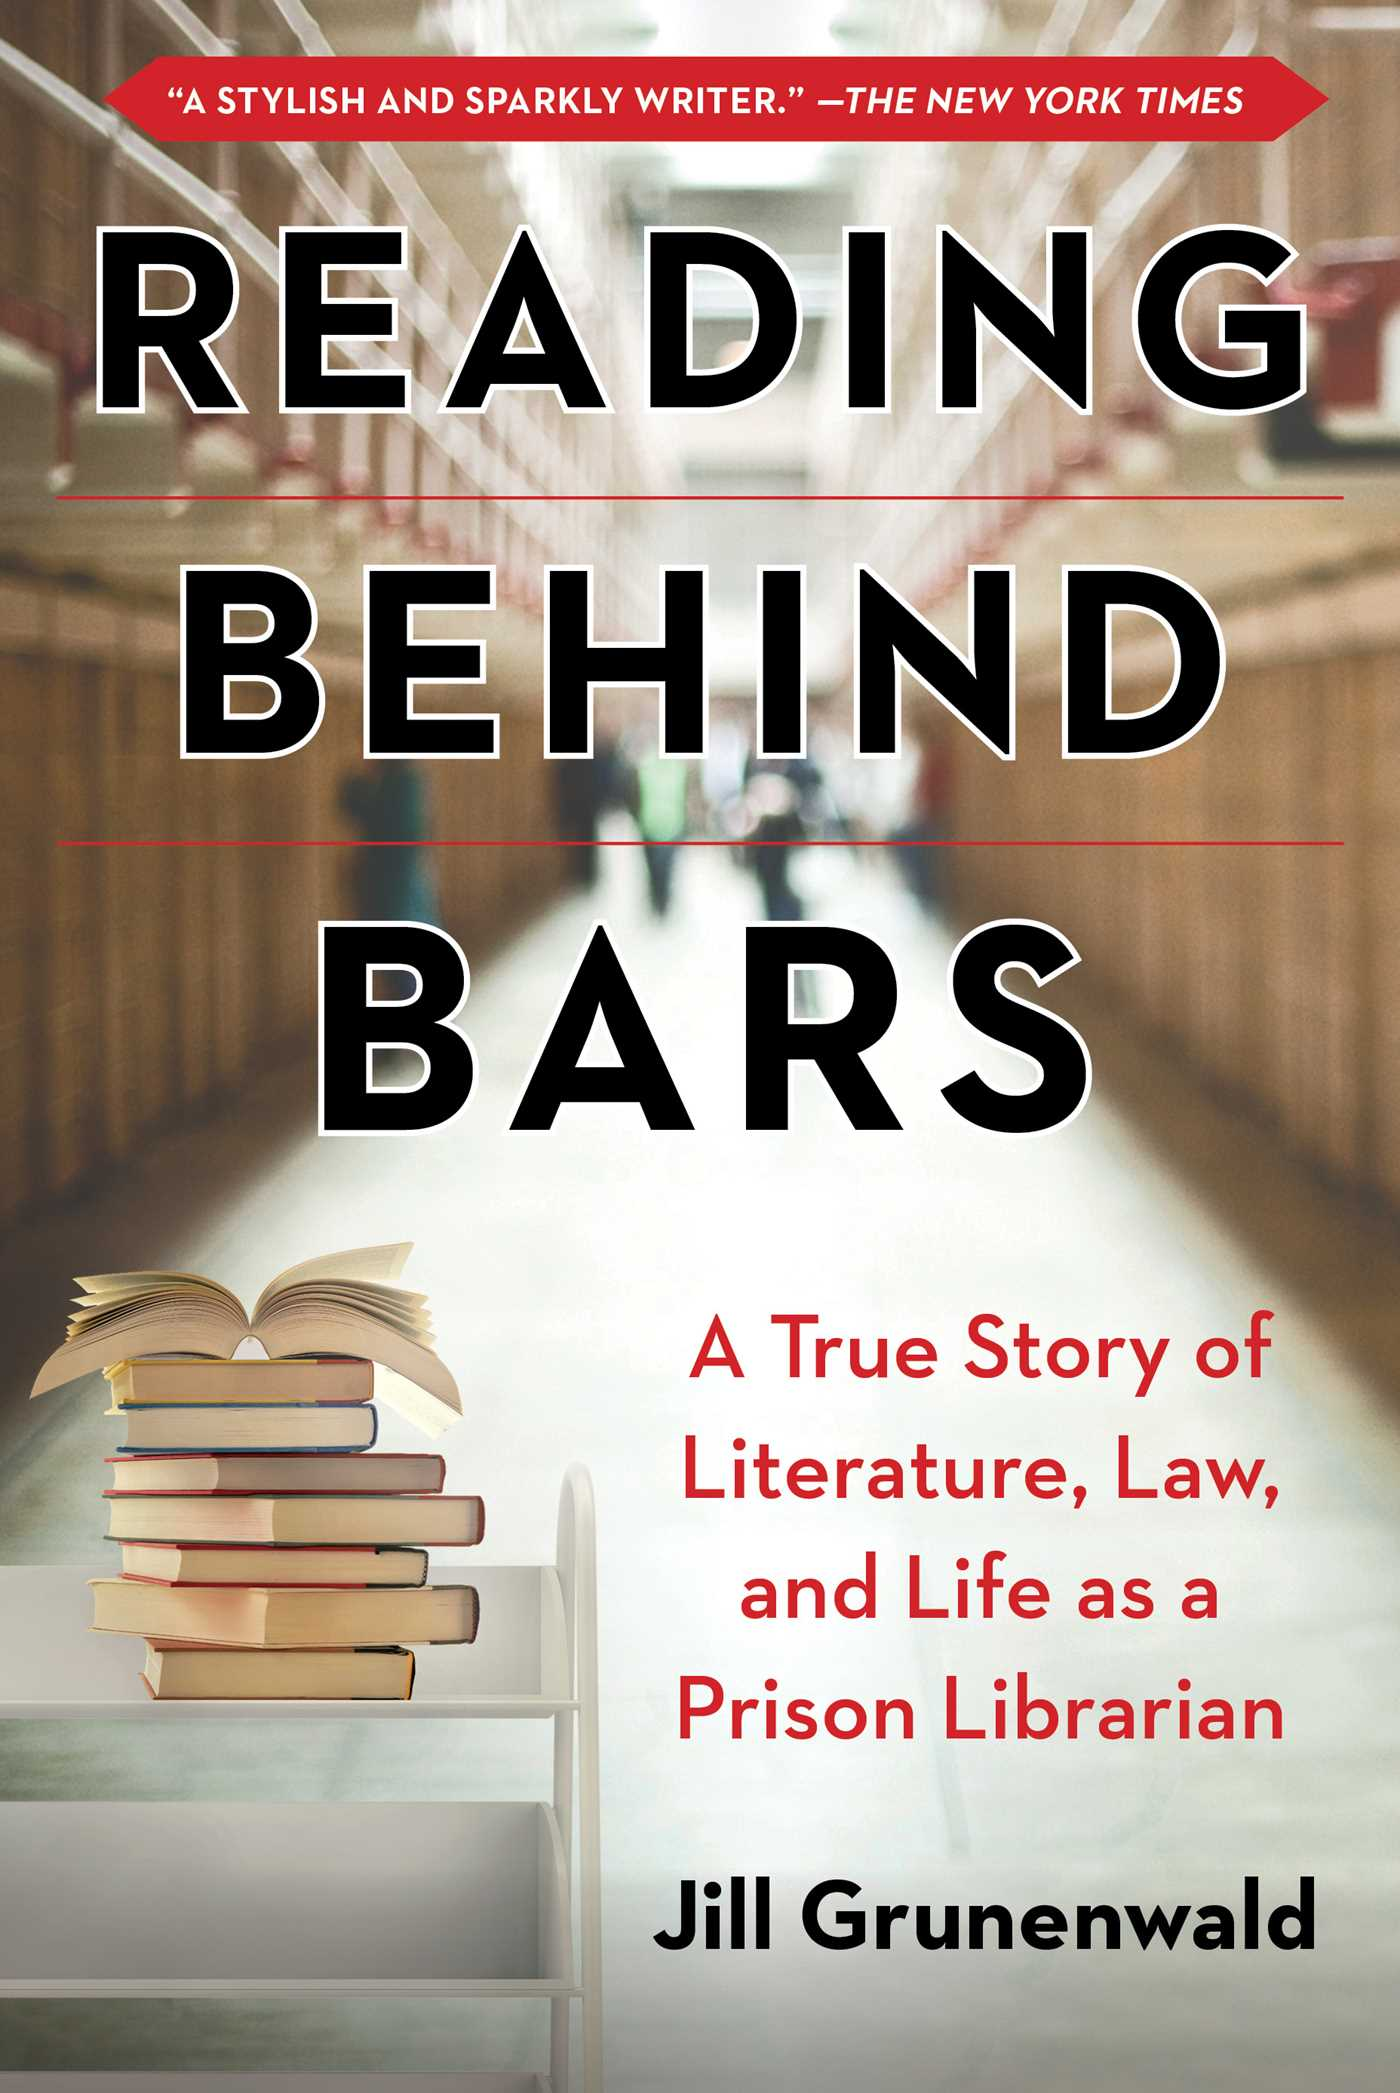 Image of READING BEHIND BARS (signed)